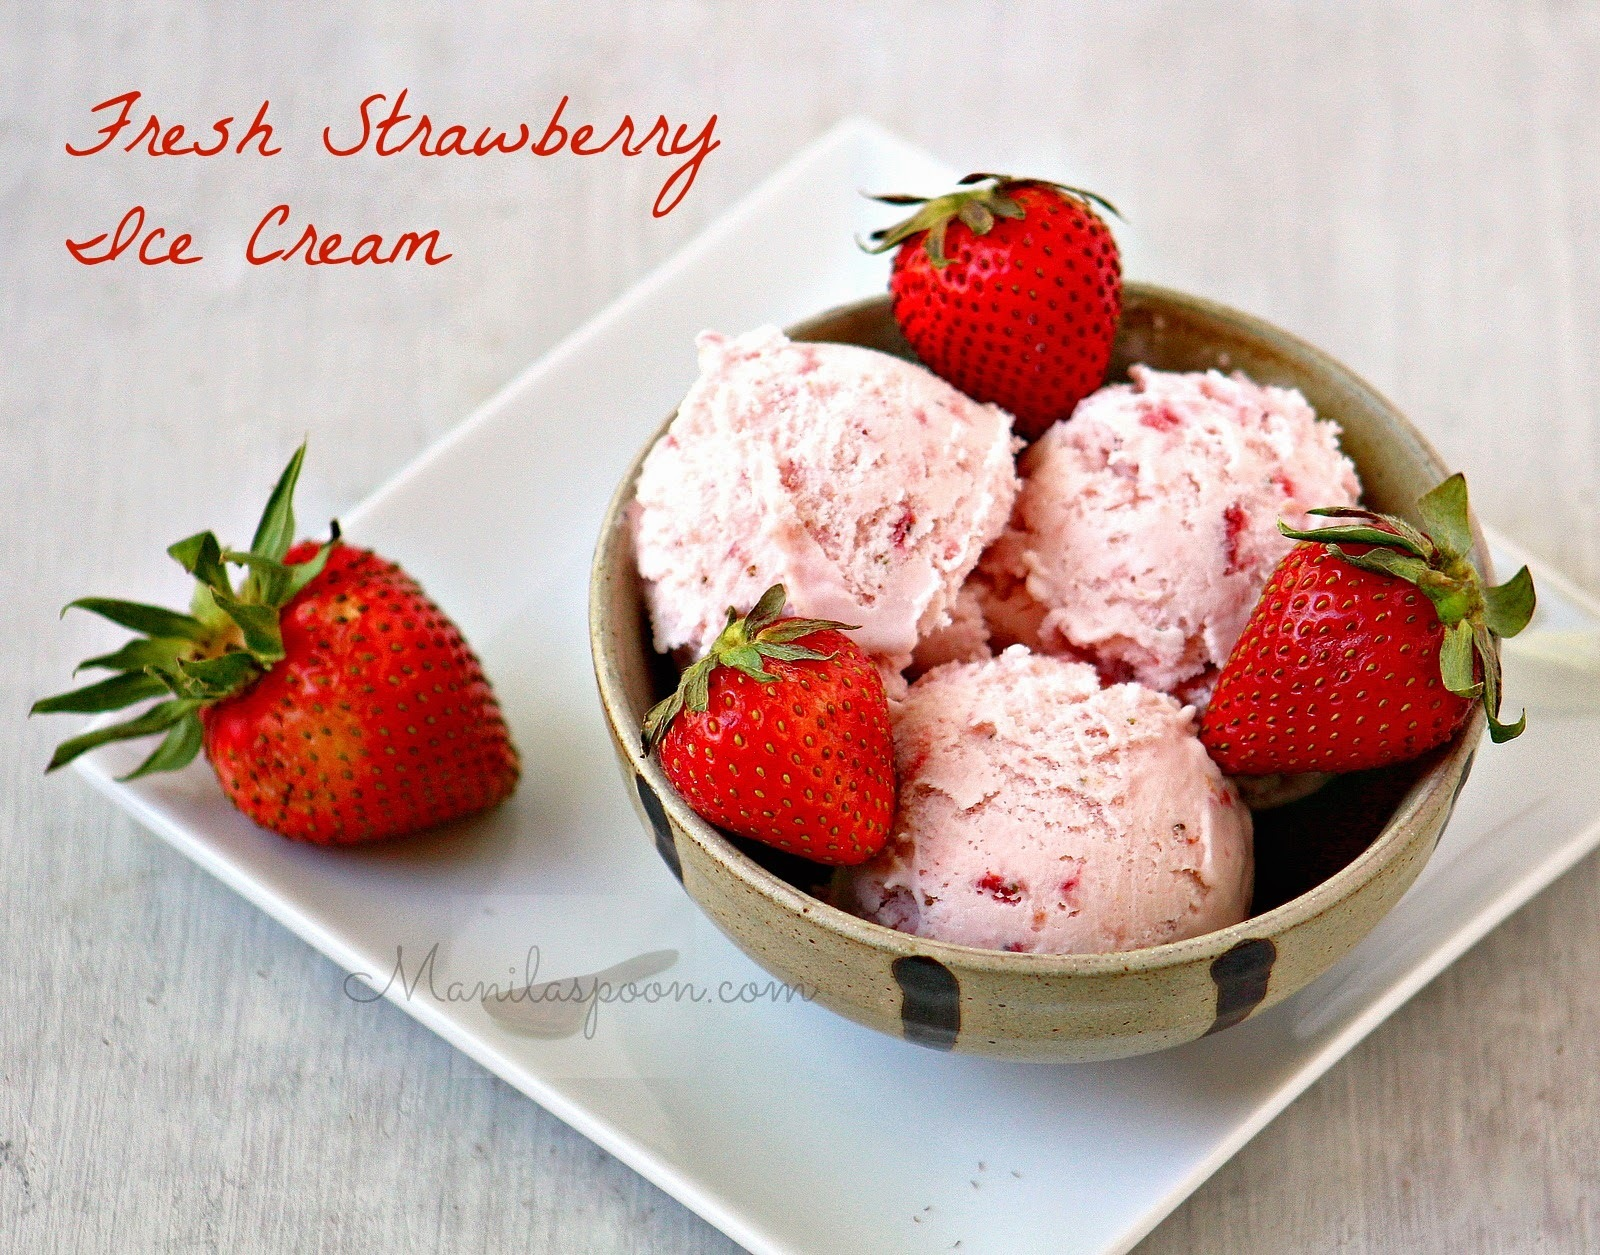 Fresh Strawberry Ice Cream